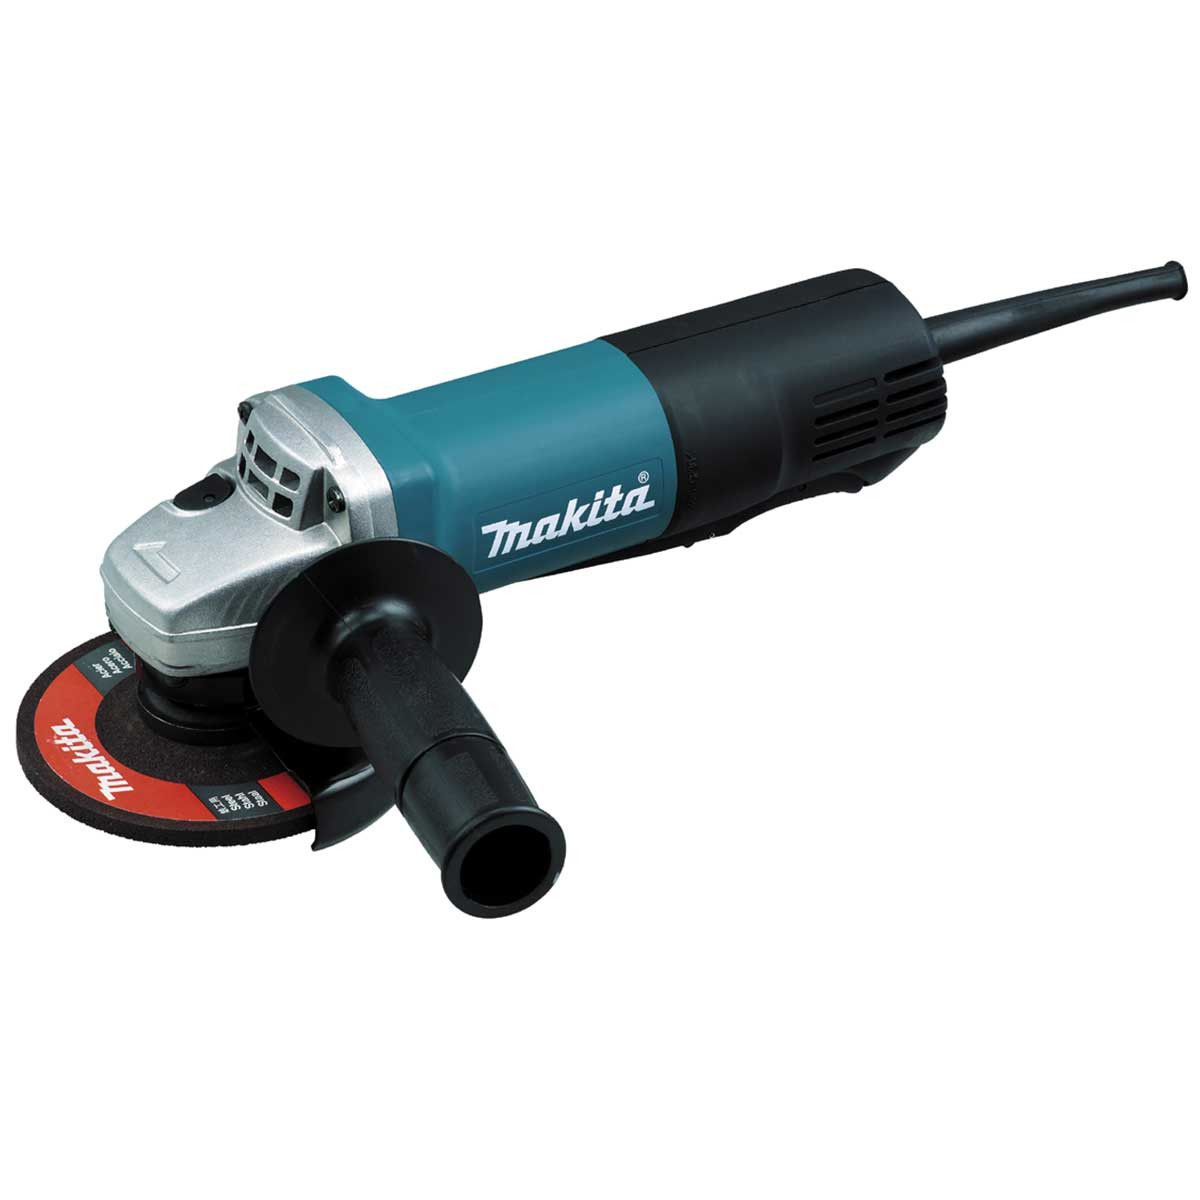 makita 4 1/2in angle grinder with paddle